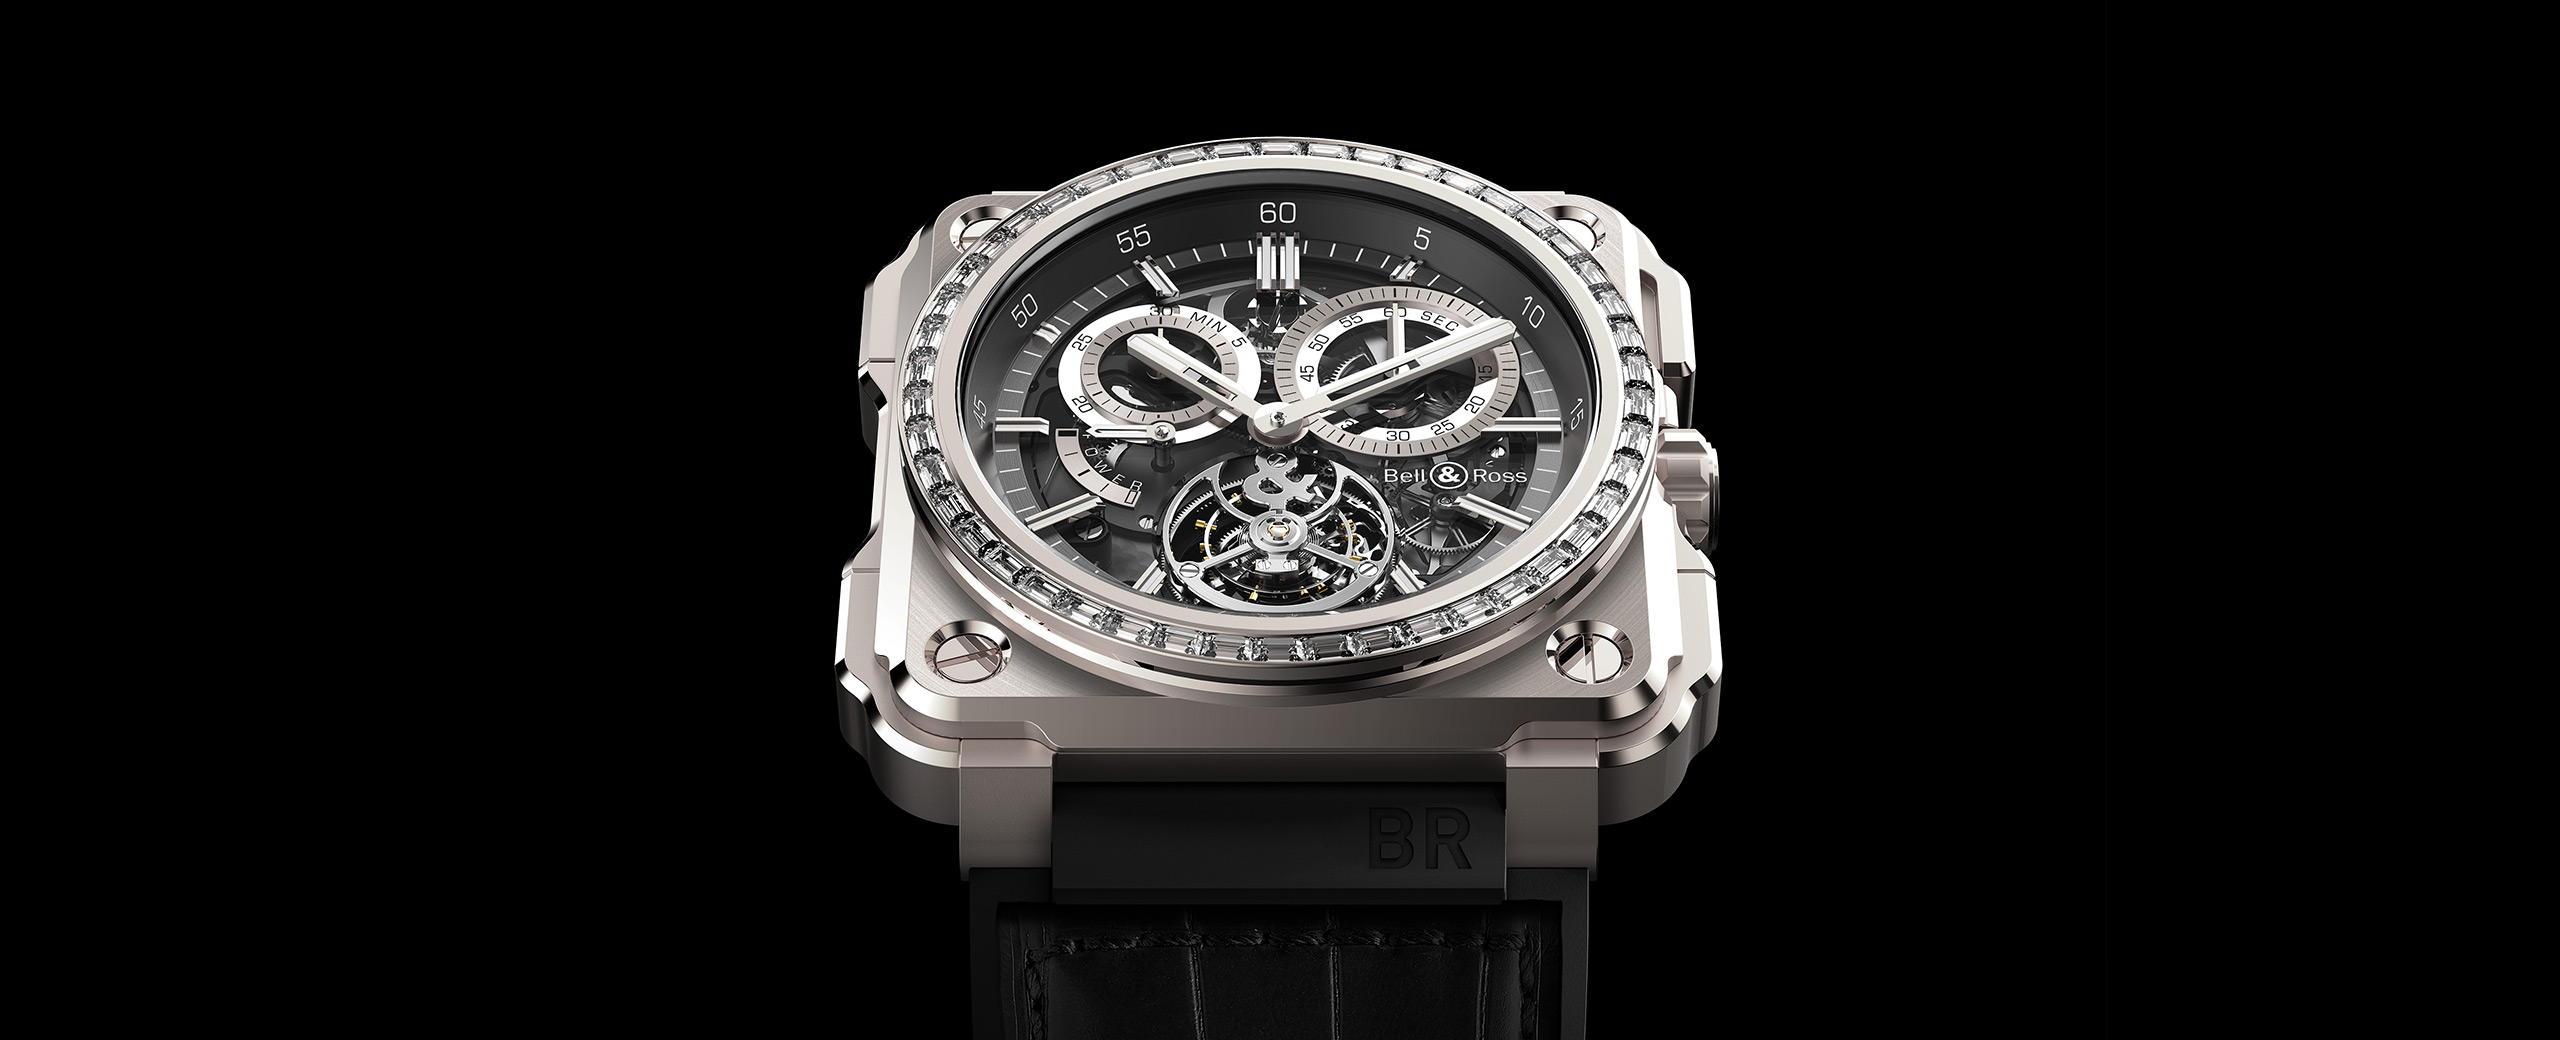 BR-X1 TOURBILLON TITANIUM DIAMONDS